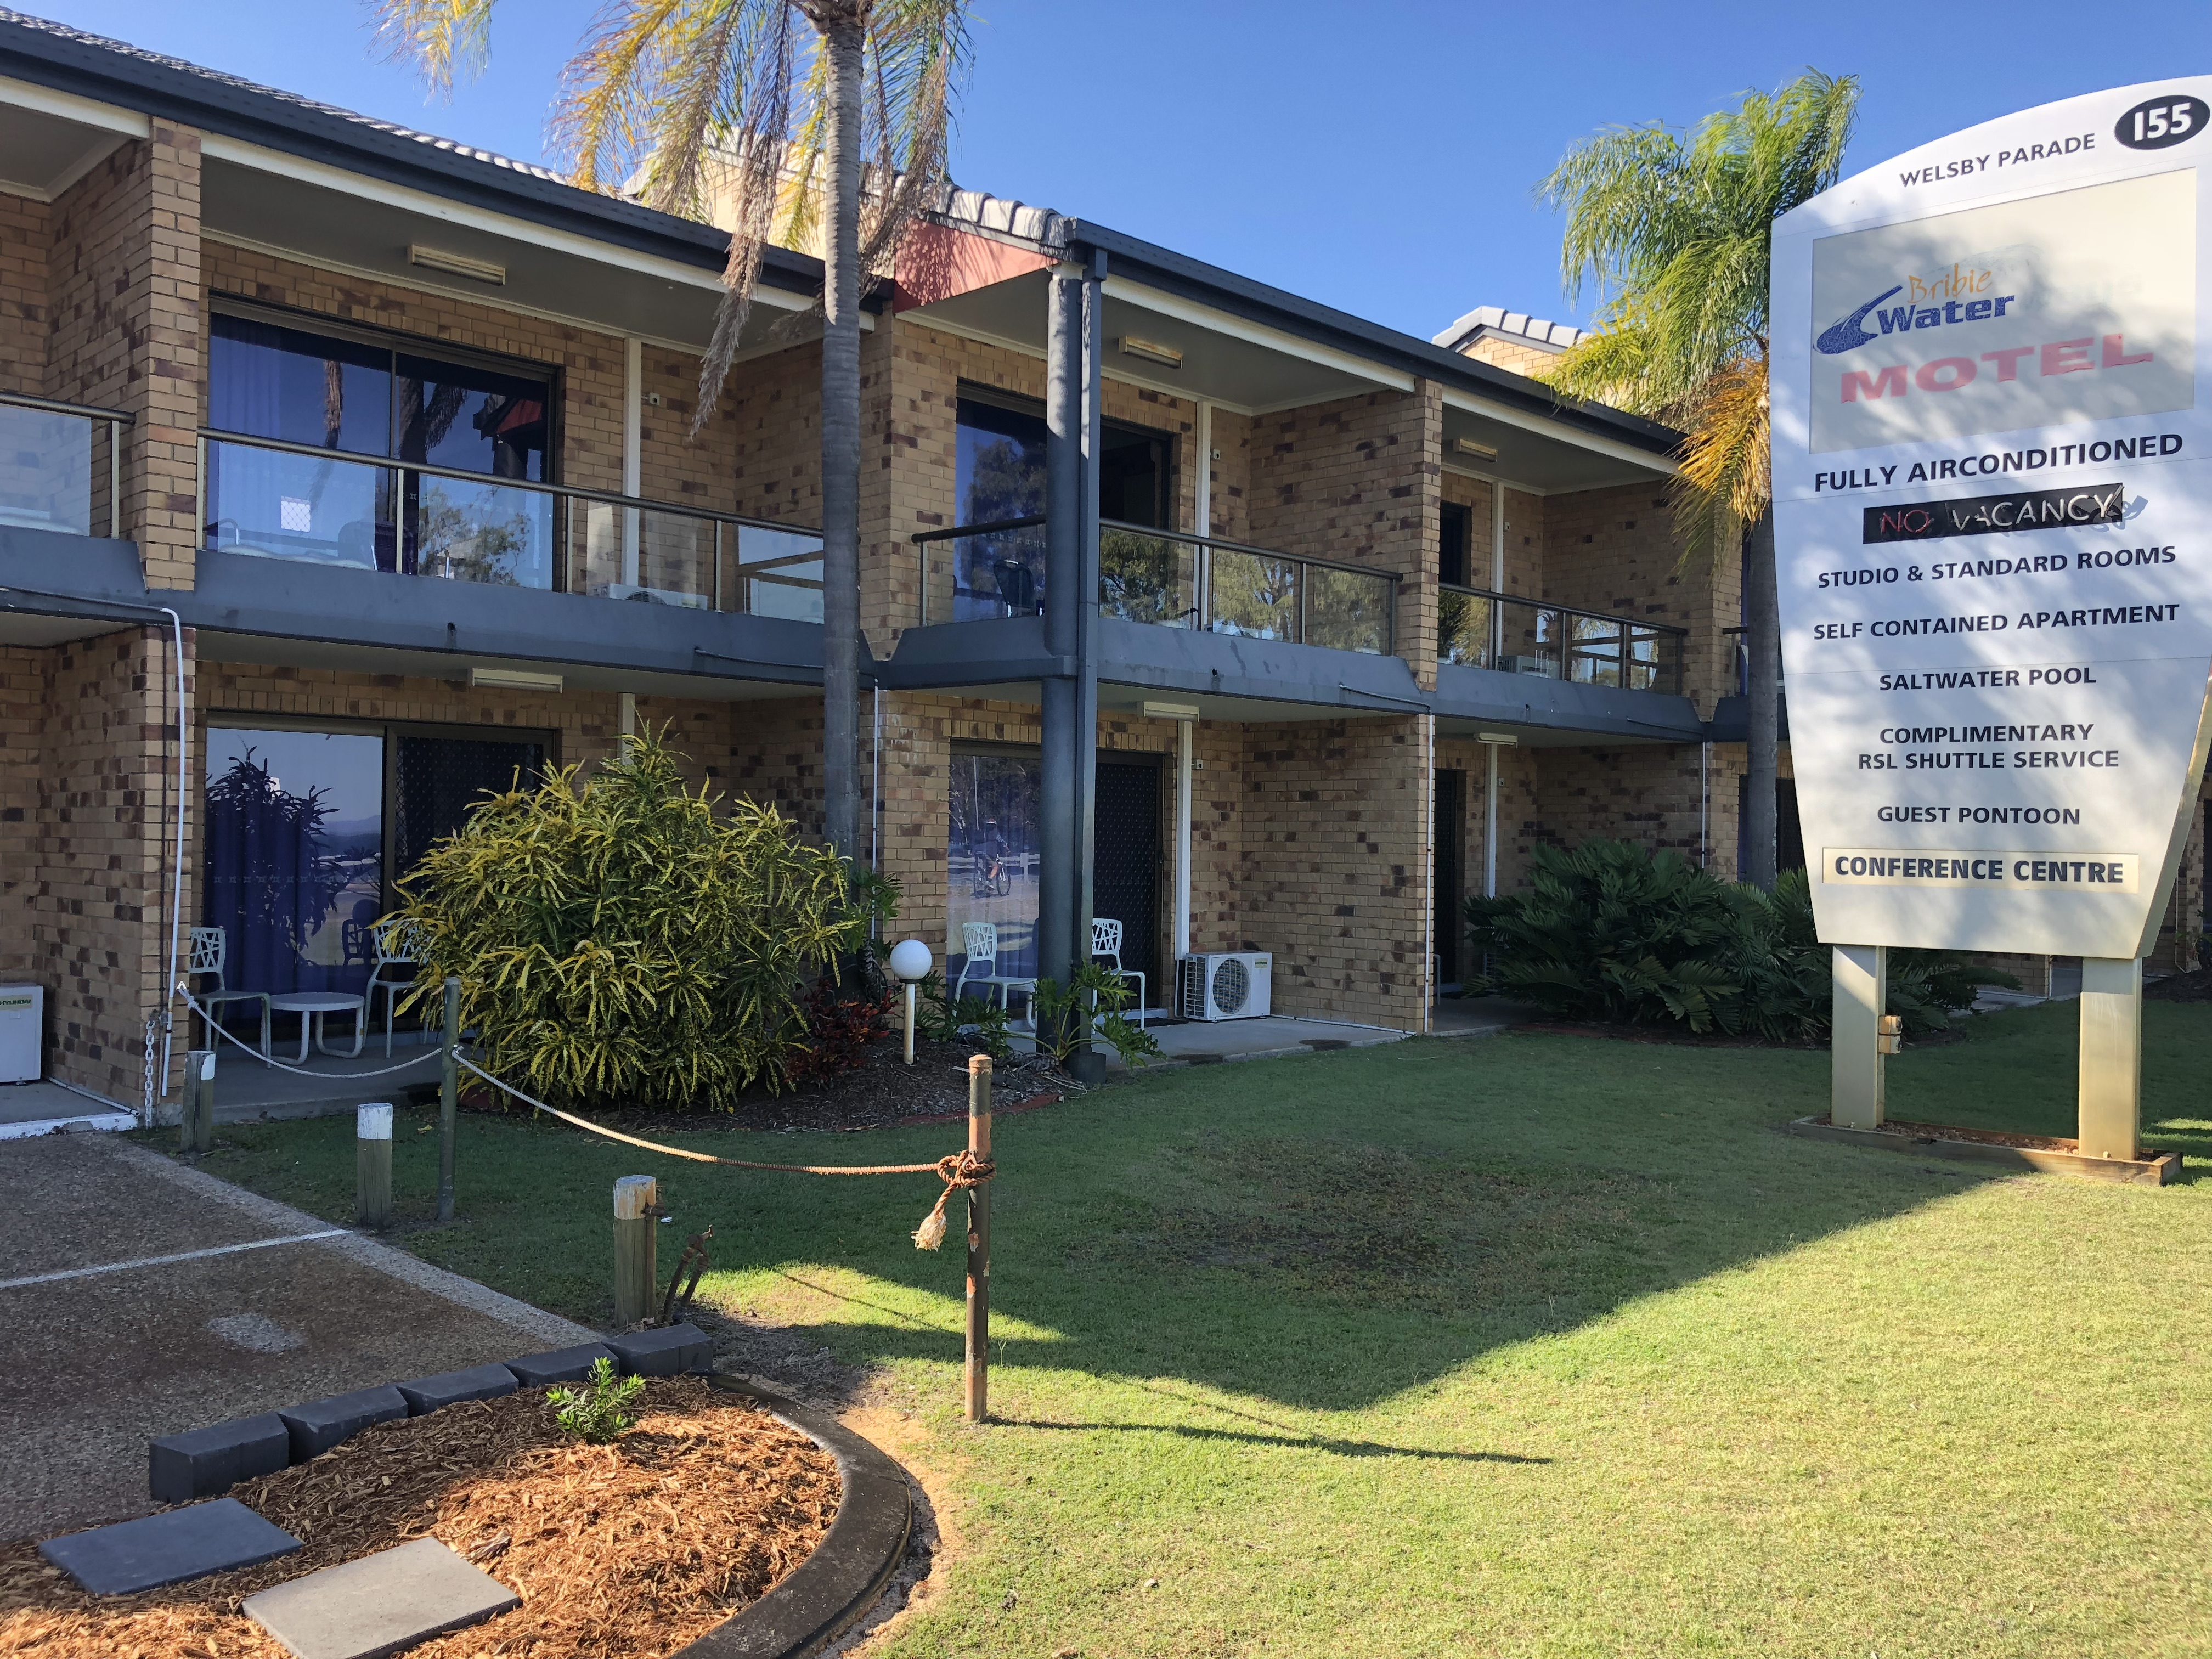 Bribie Waterways Motel offers a combination of room styles for your stay